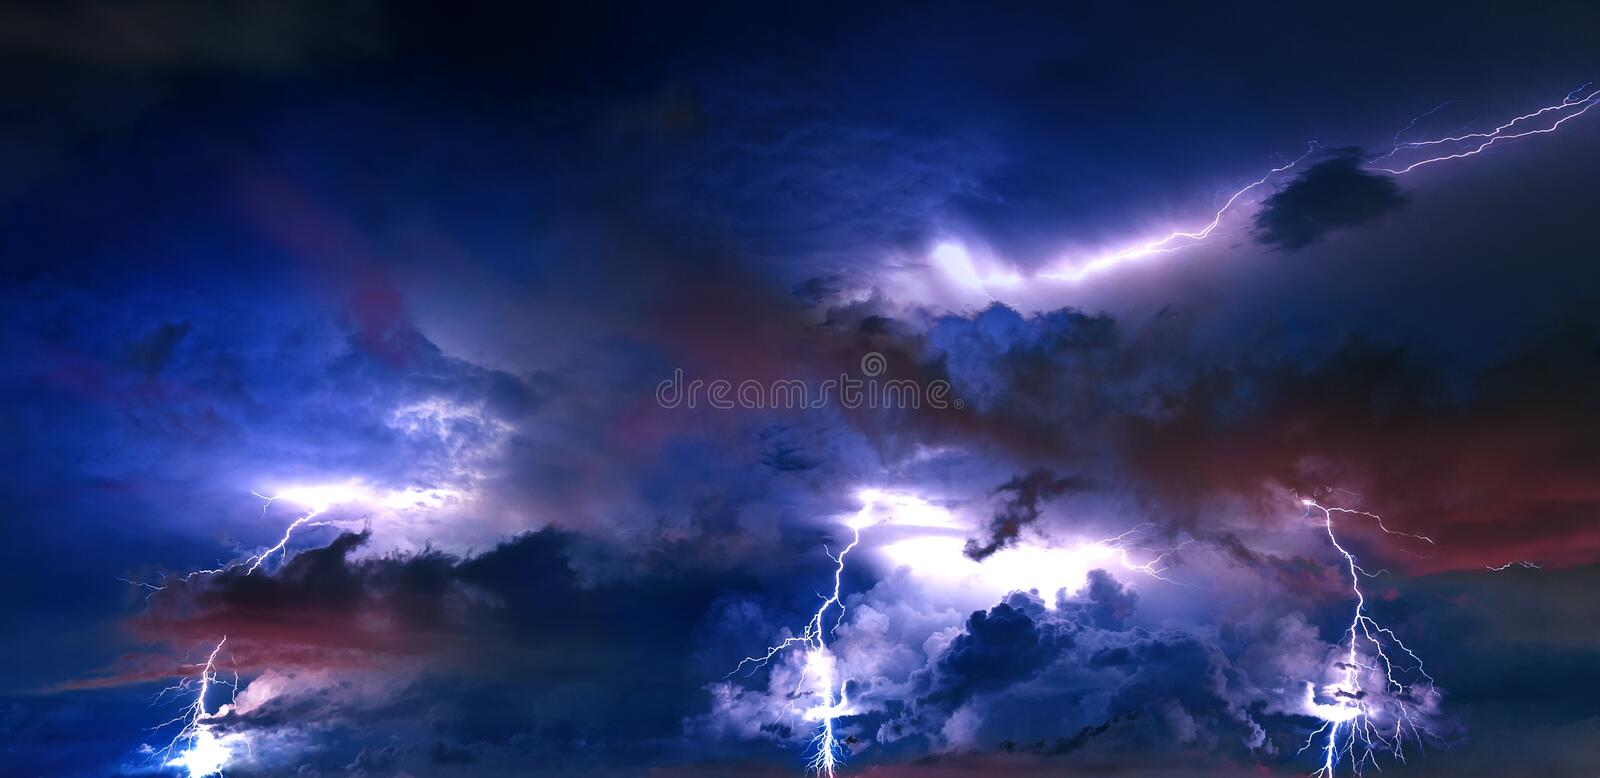 Thunderstorm clouds with lightning at night royalty free stock images